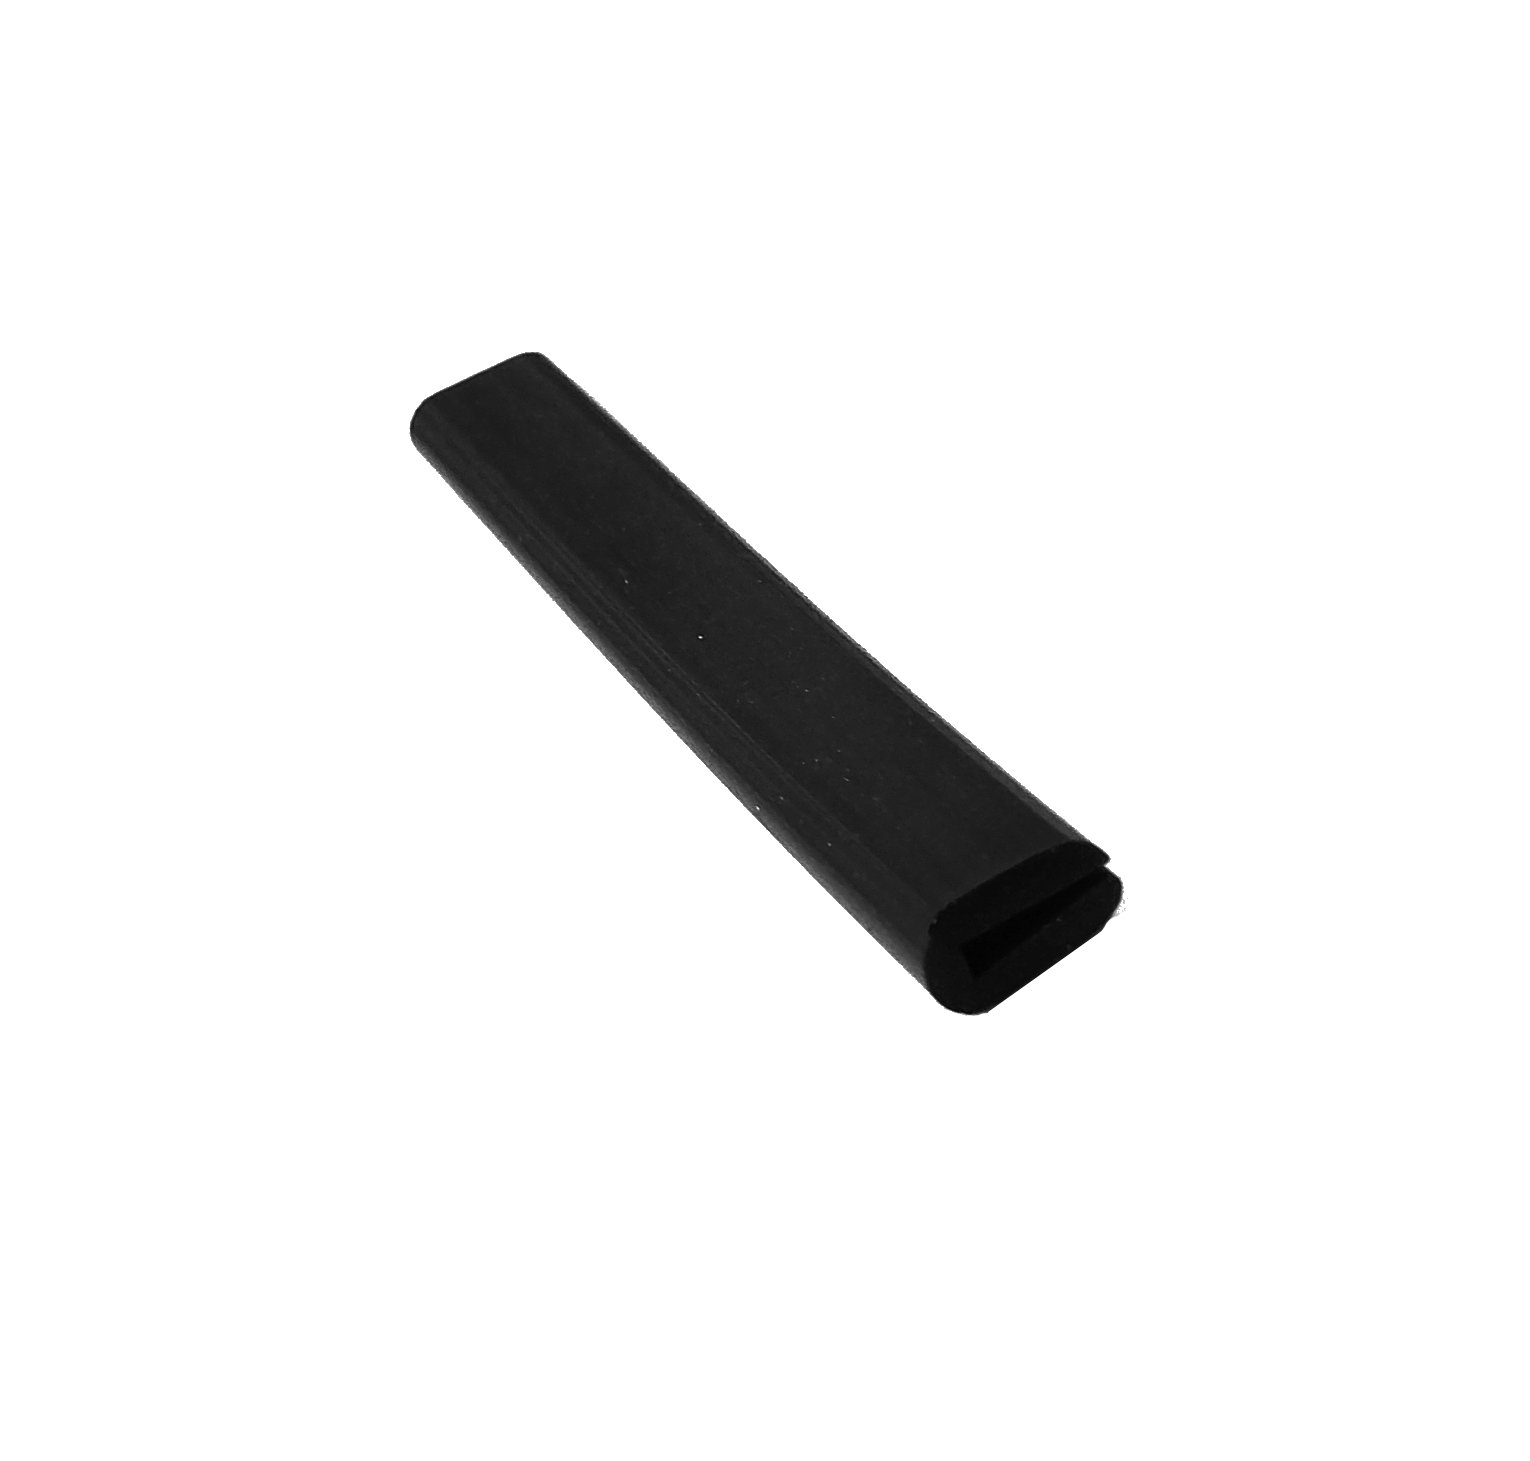 Herco 2043U Neoprene Rubber Rounded U-Channel Edge Protector Extrusion 1/16'' Slot x 50 feet